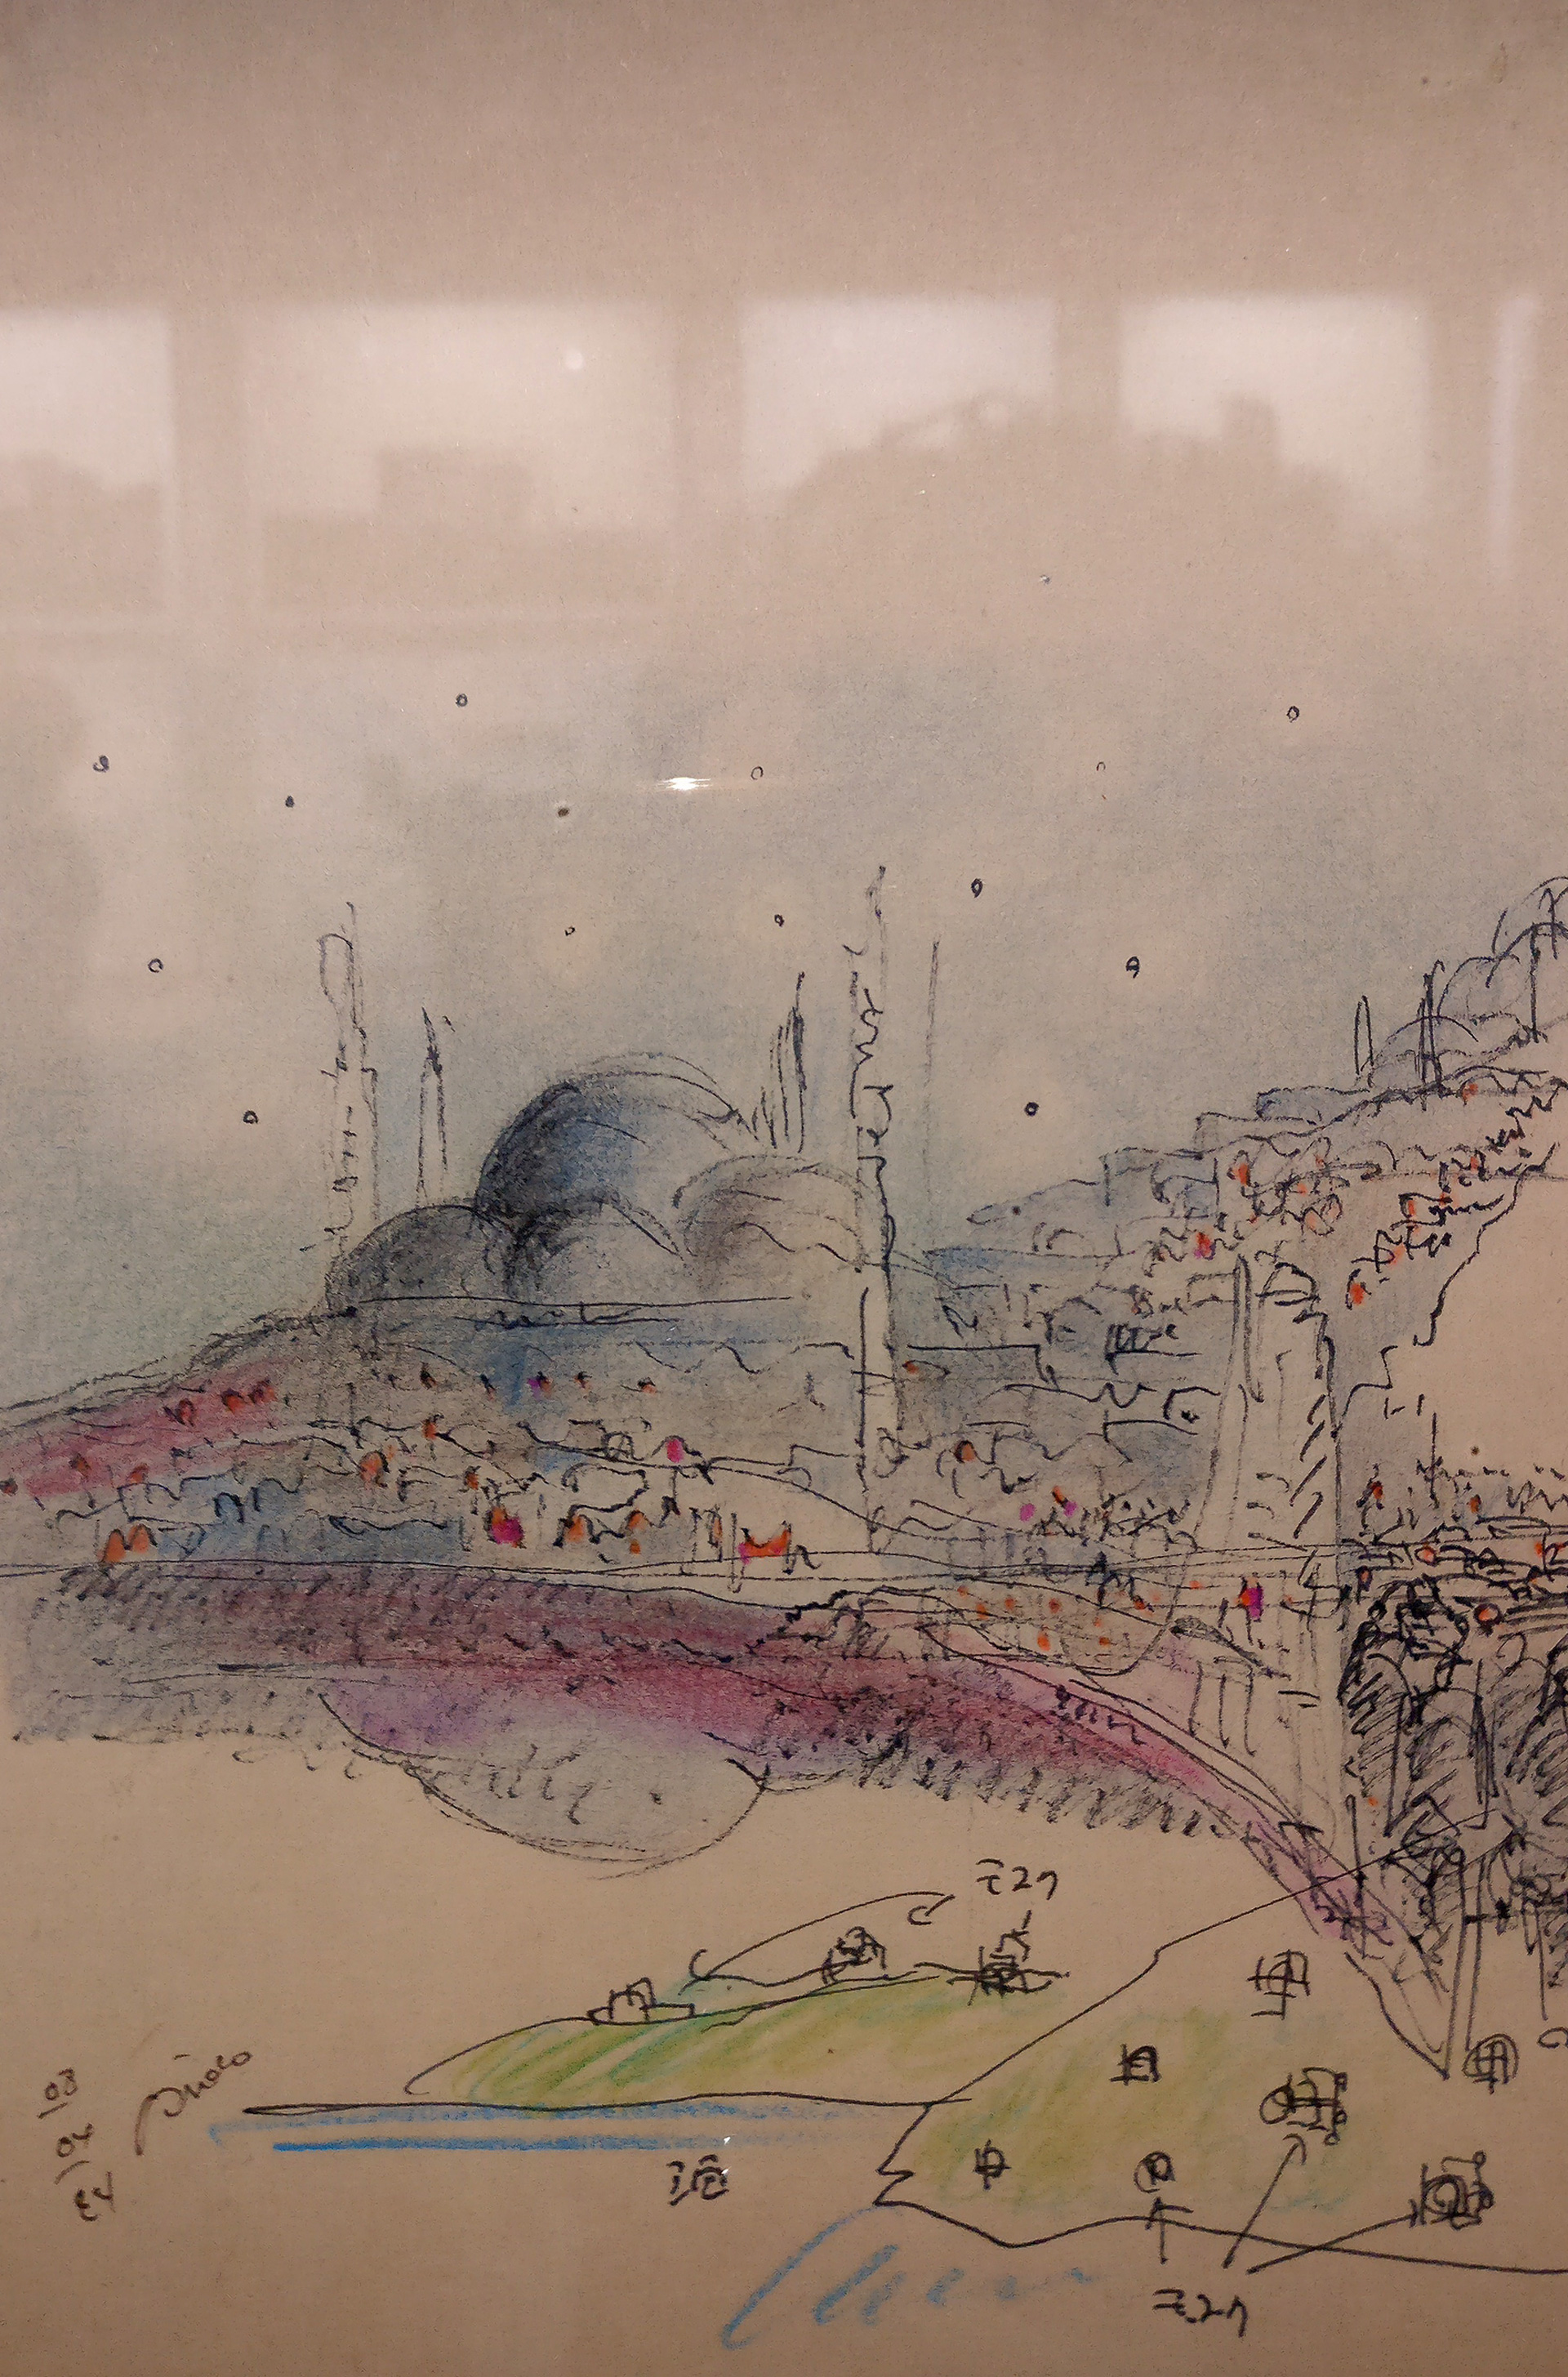 Sketch by Tadao Ando, at The Challenge on display at Armani/Silos| The Challenge| Tadao Ando| Armani/Silos| STIR